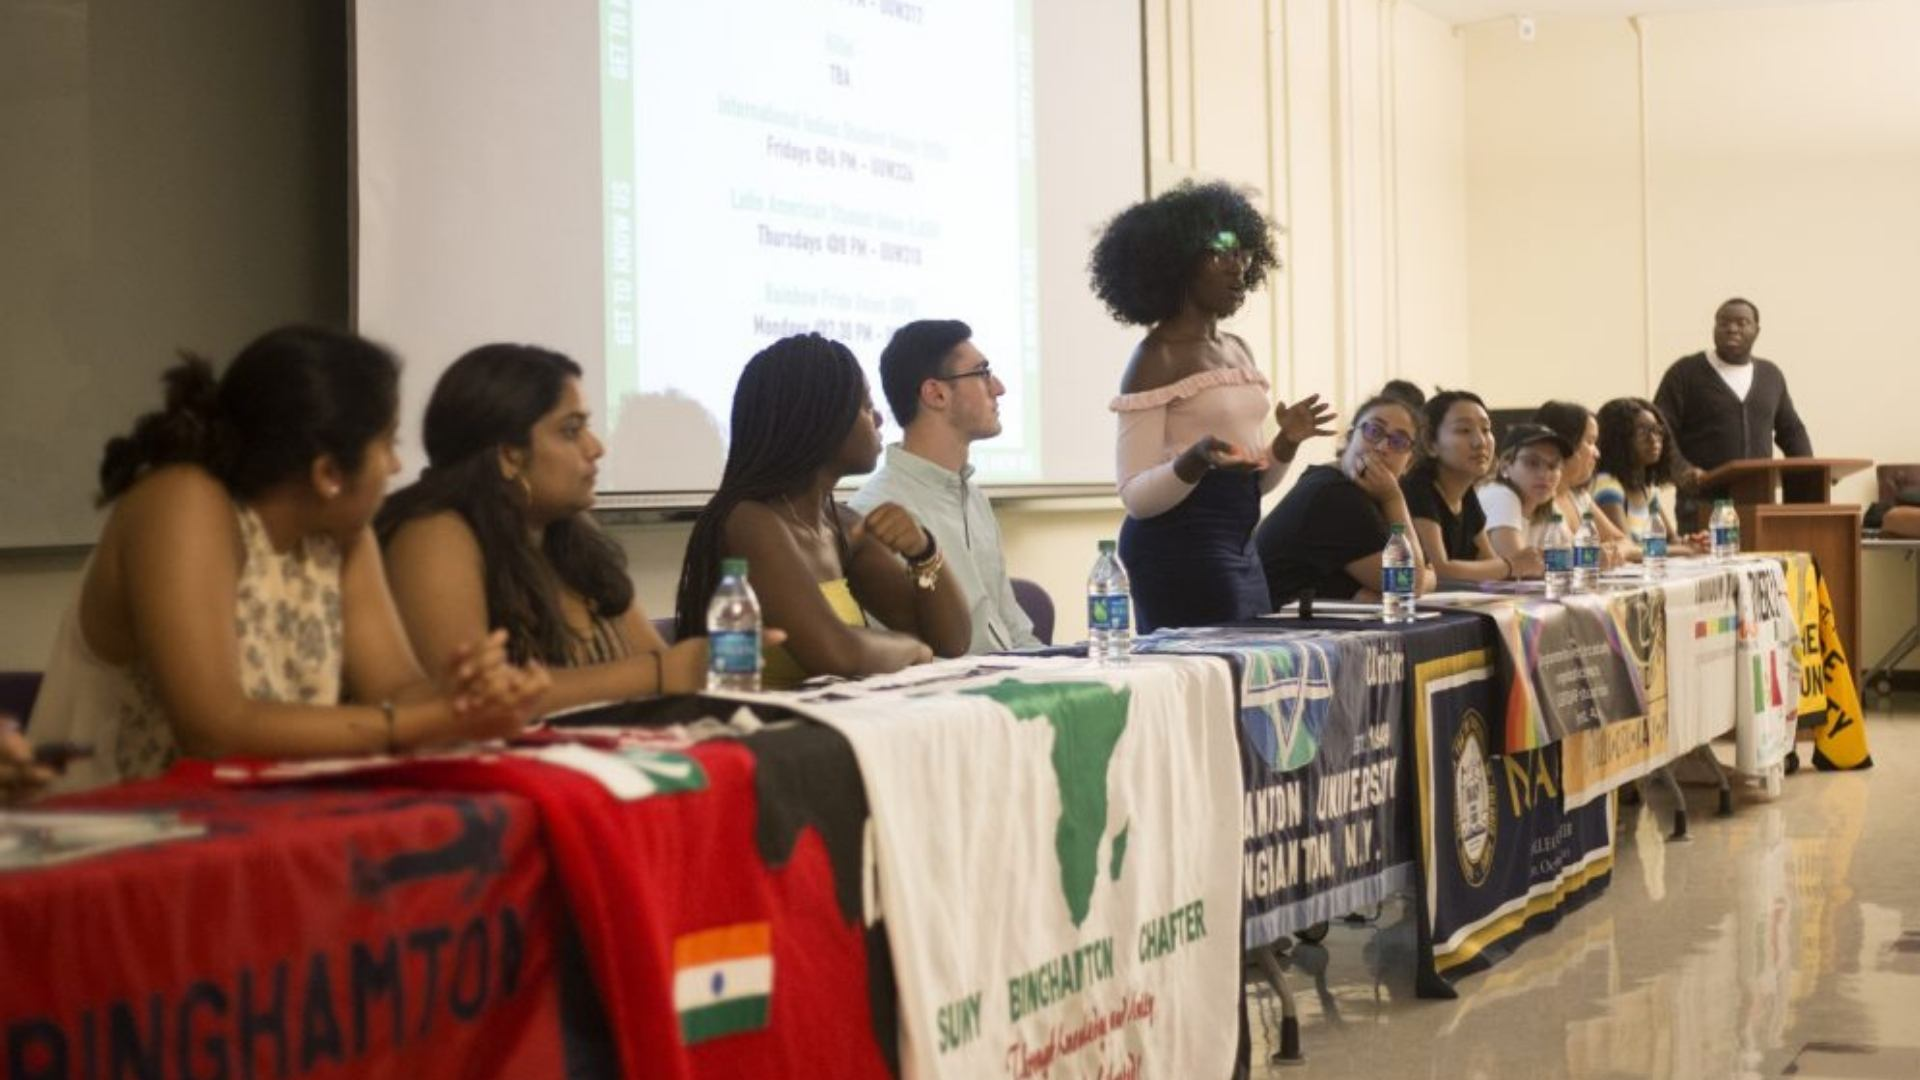 a panel of student organization leaders in front of a room with organization banners on the table and one female student leader at the podium speaking